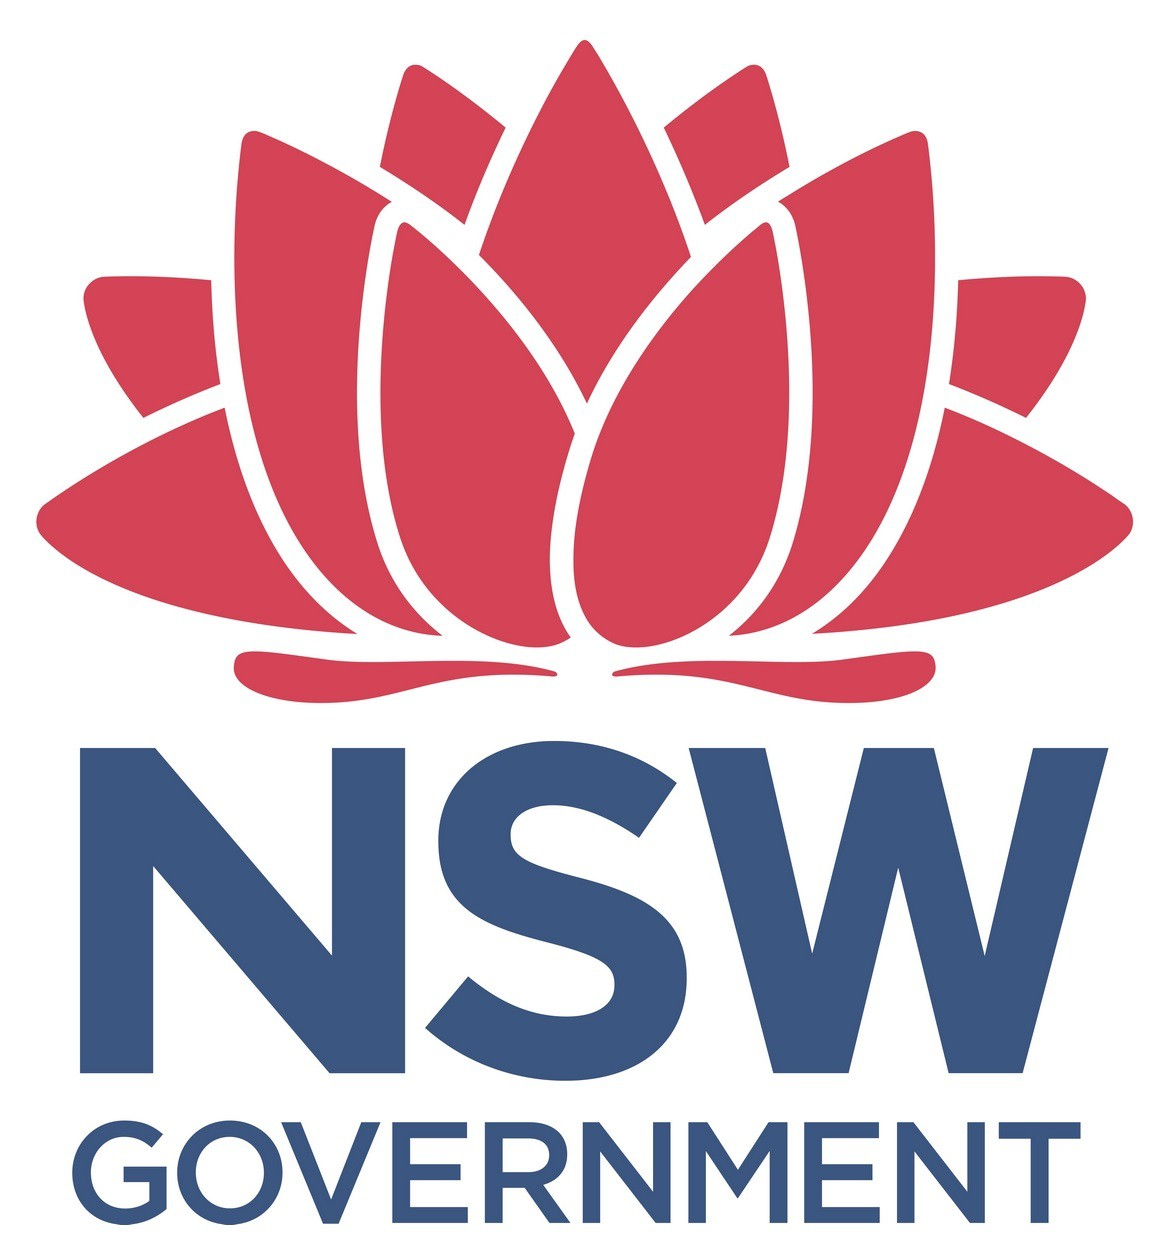 NSW Logo   Government png